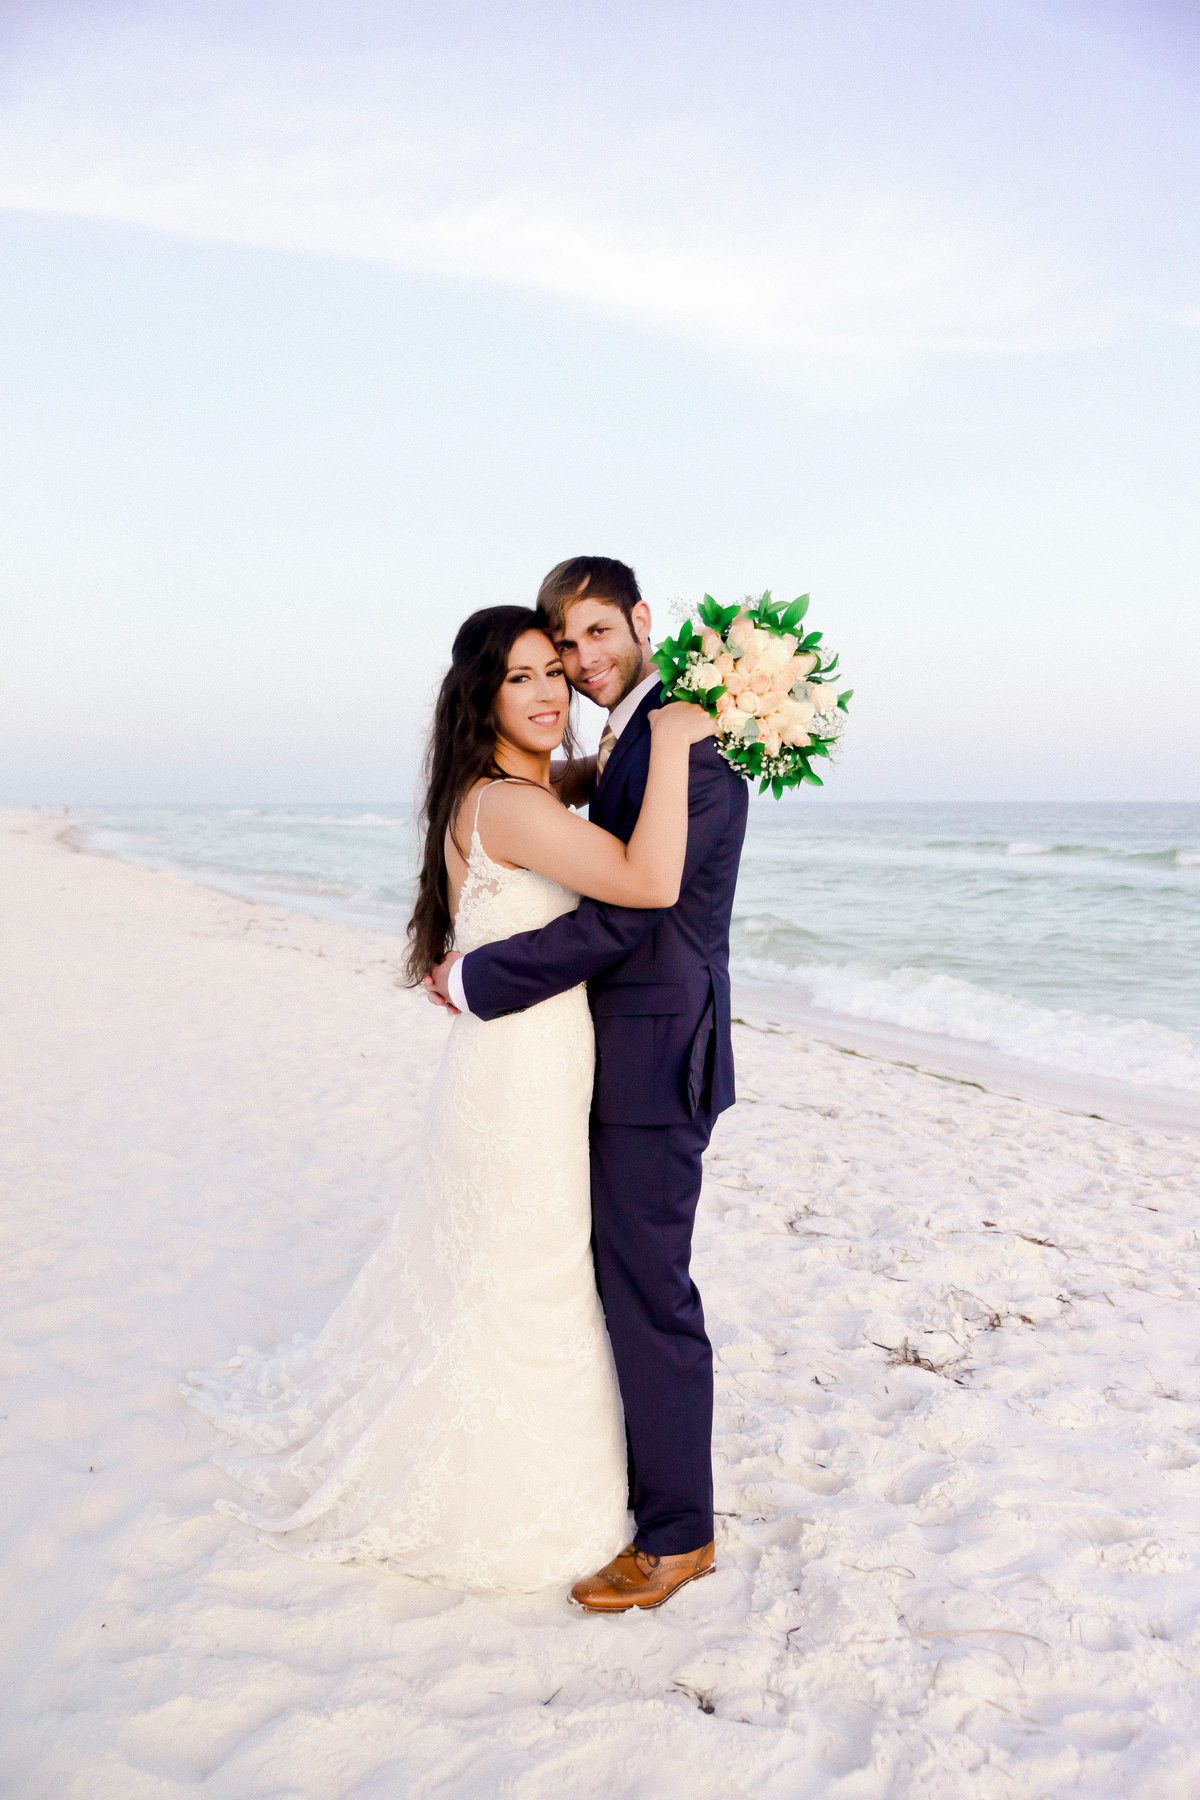 Bride and Groom holding each other on the beach in Destin, FL